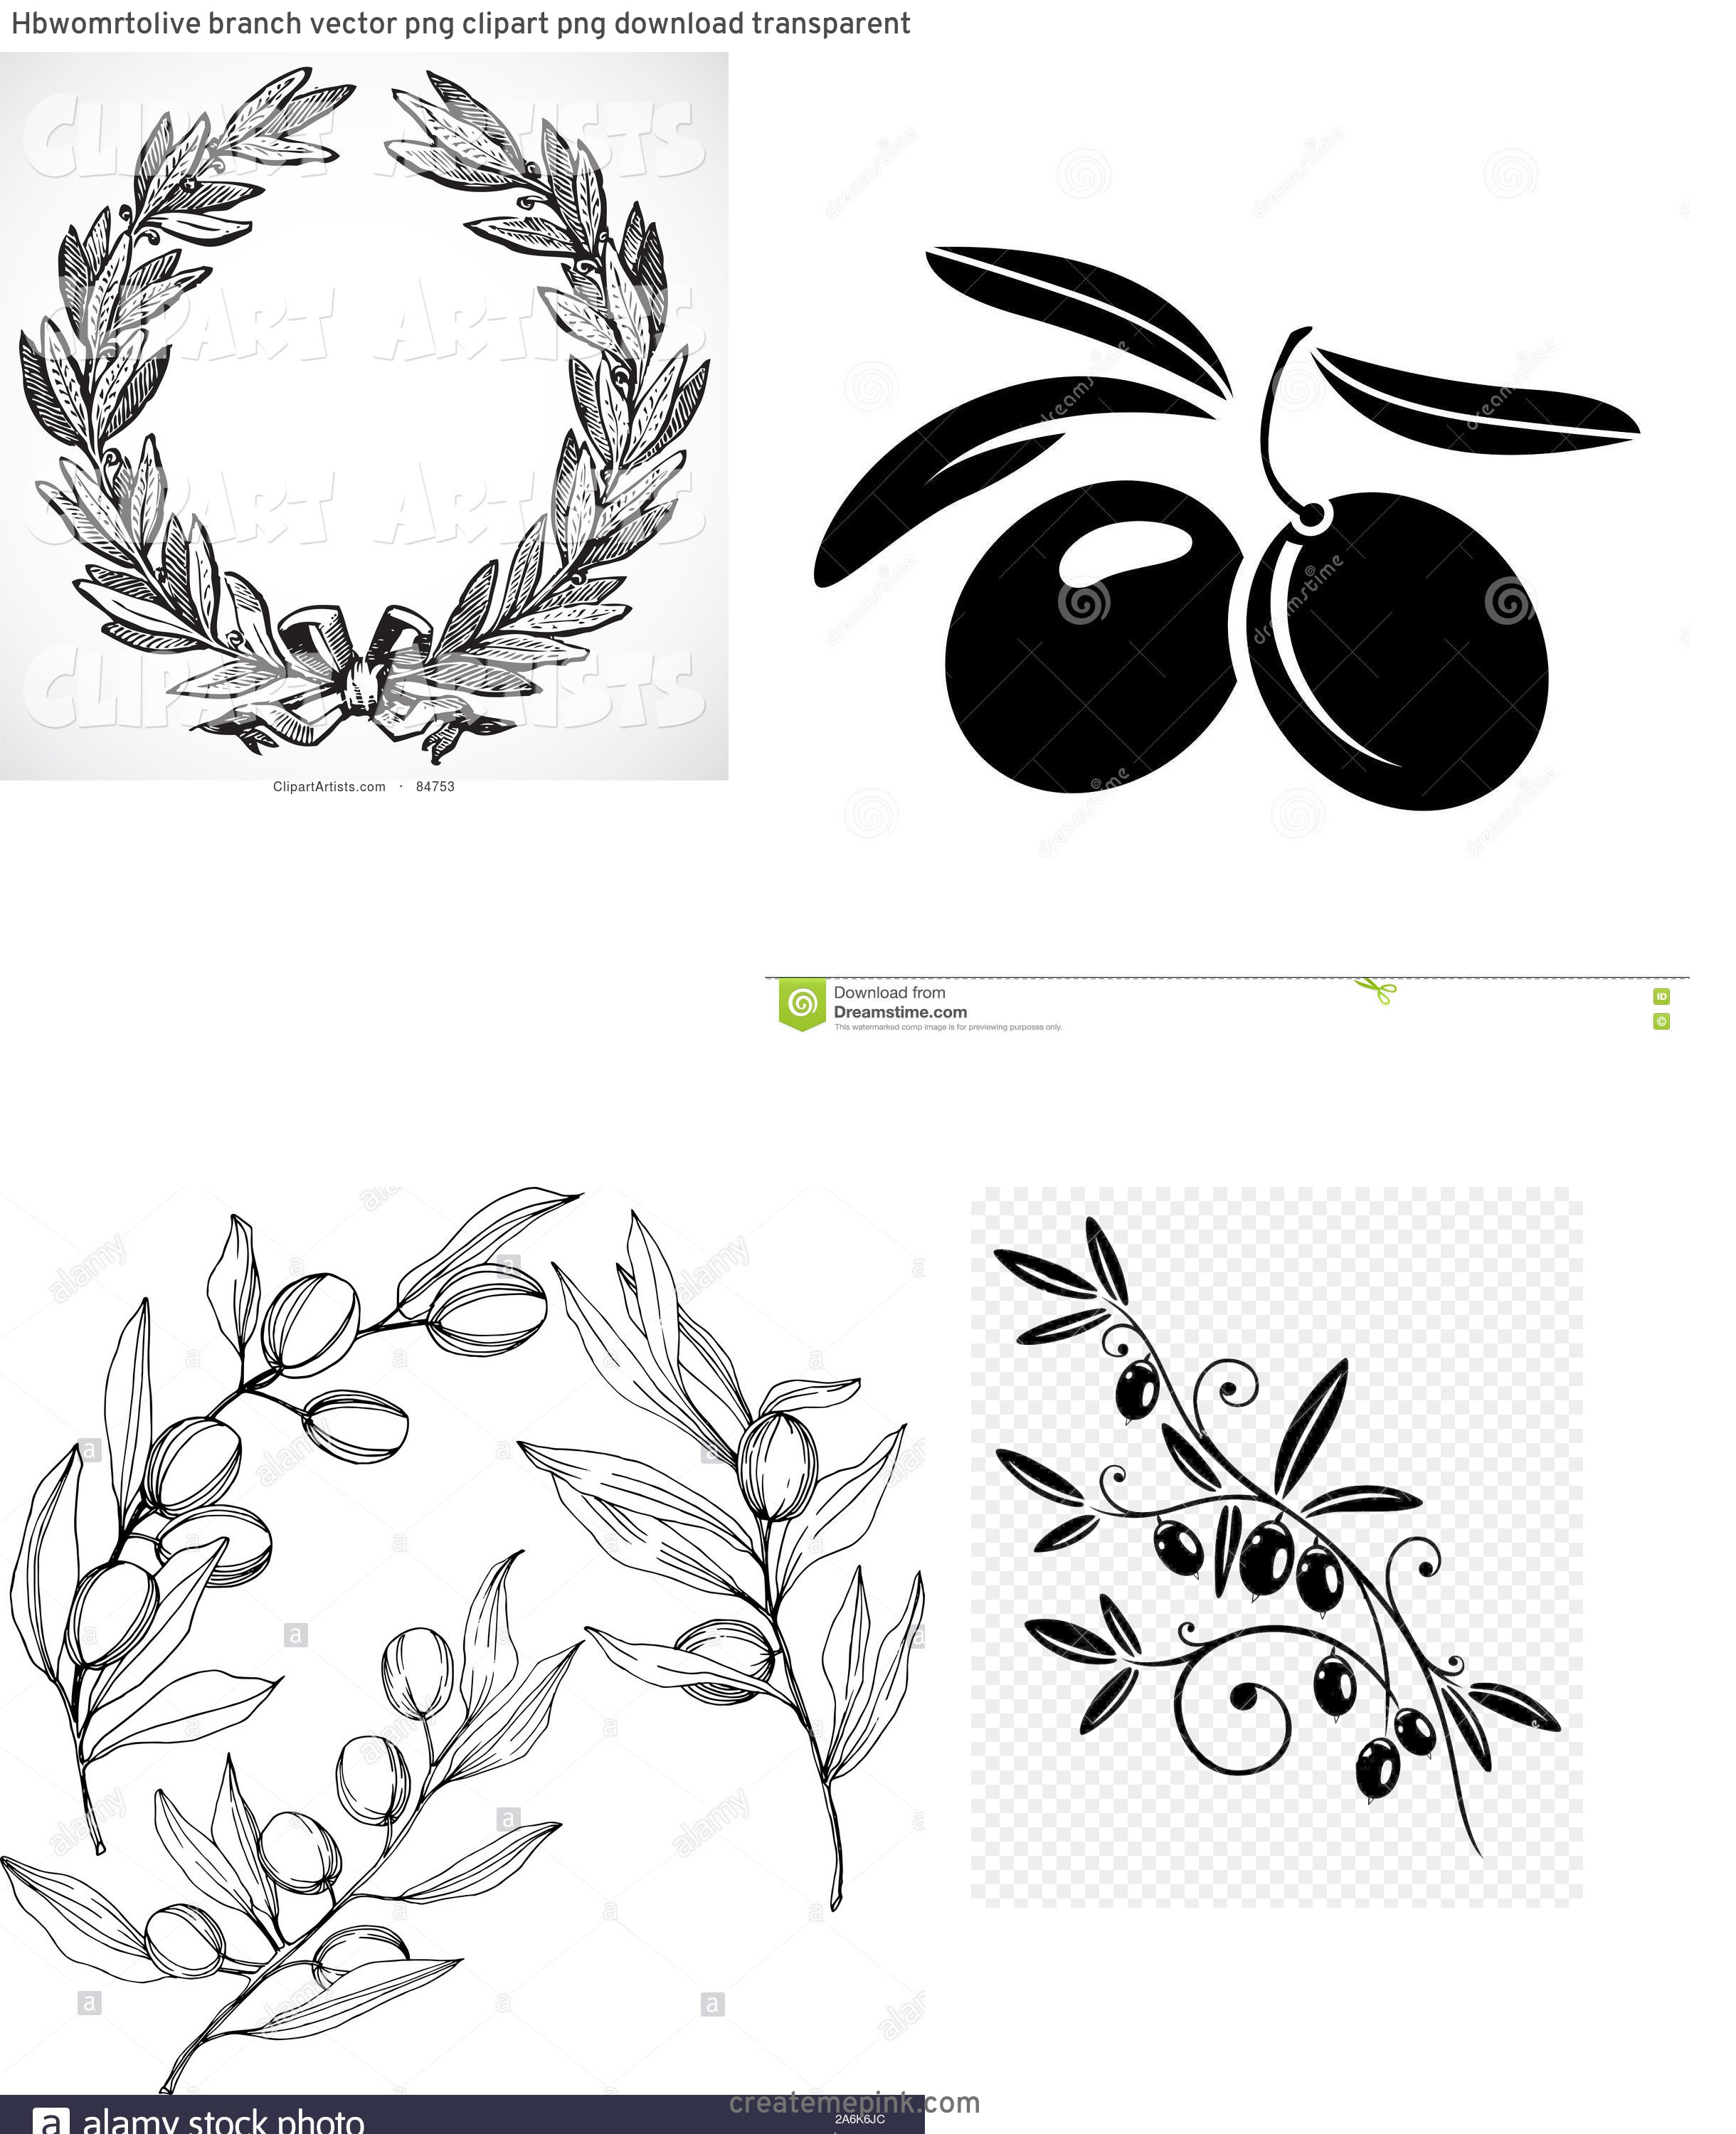 Olive Black And White Vector Leaves: Hbwomrtolive Branch Vector Png Clipart Png Download Transparent